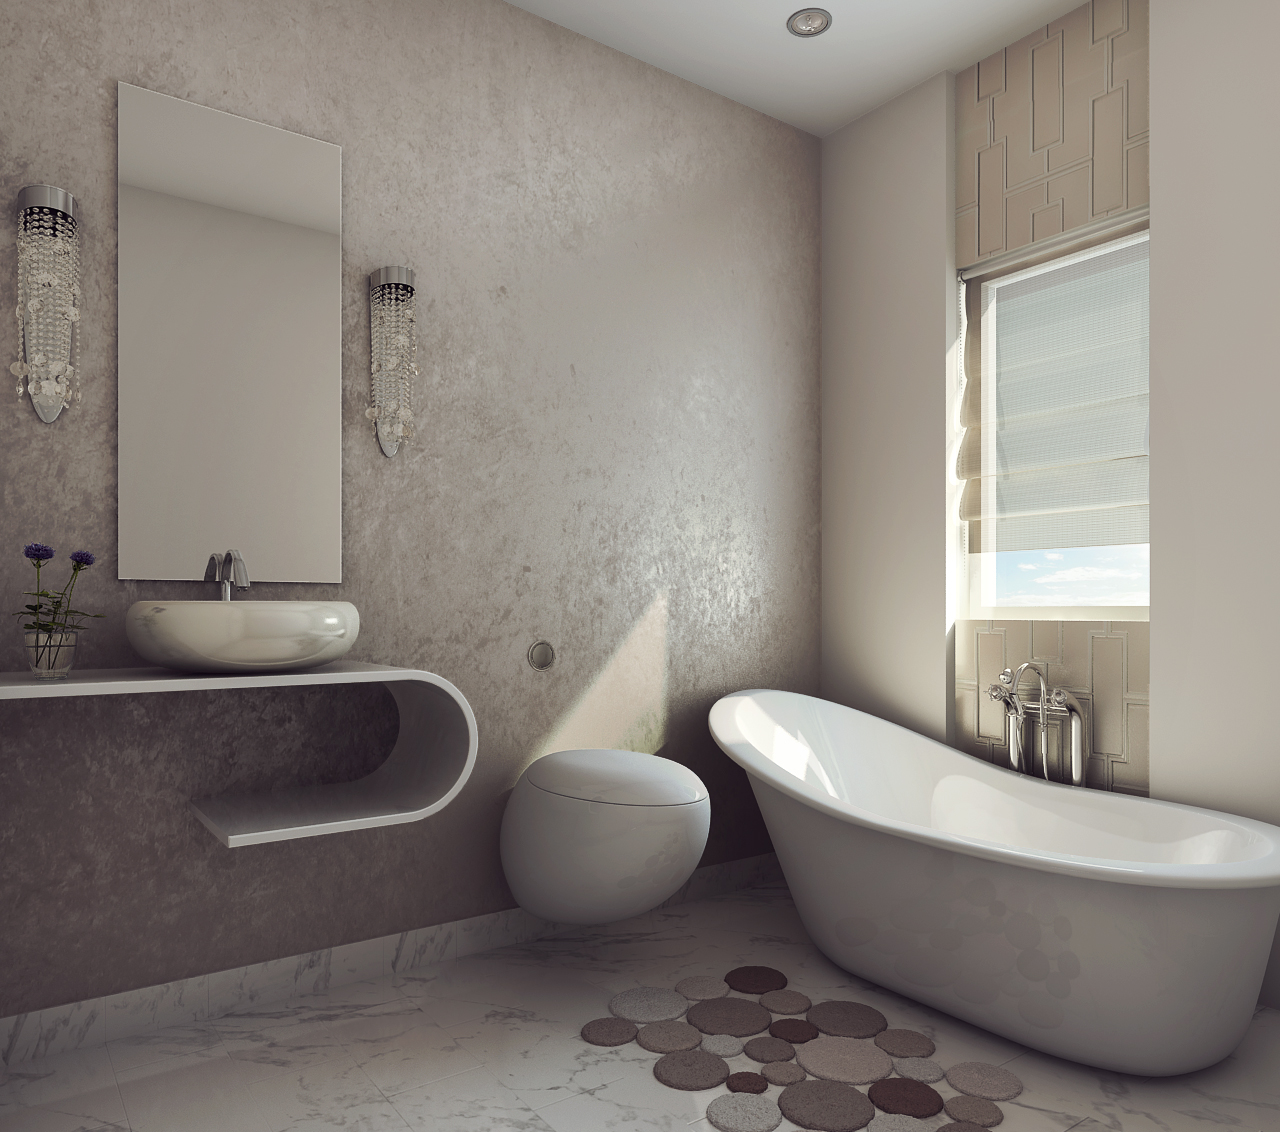 Modern earthy design bath room free 3d model max for Model bathrooms pictures